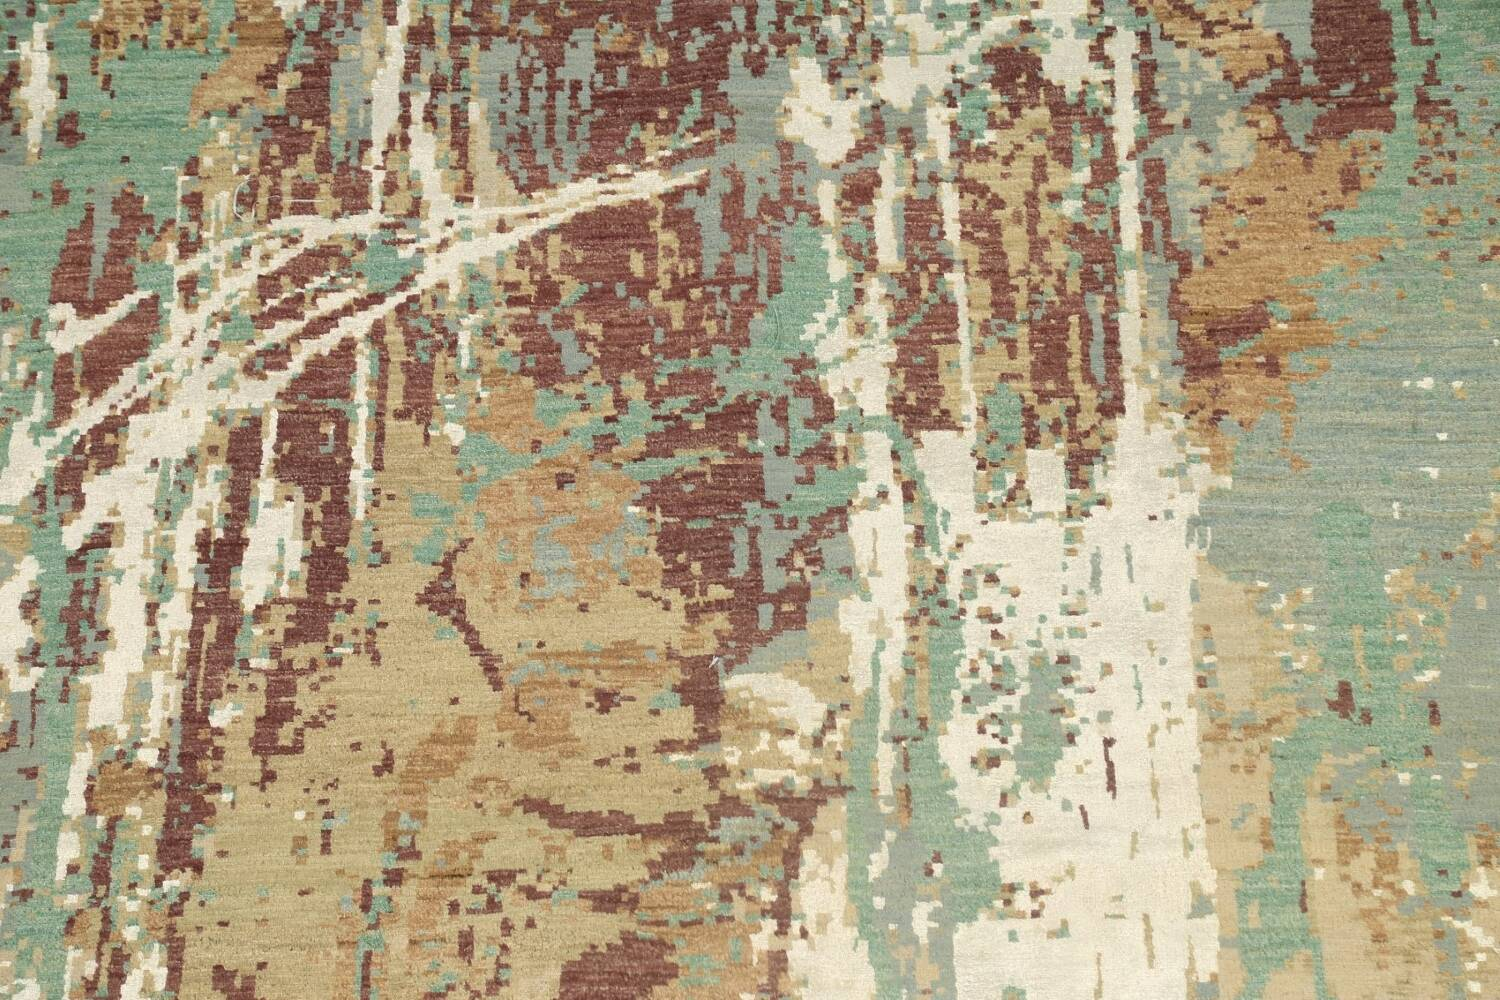 Vegetable Dye Contemporary Abstract Oriental Area Rug 6x9 image 4